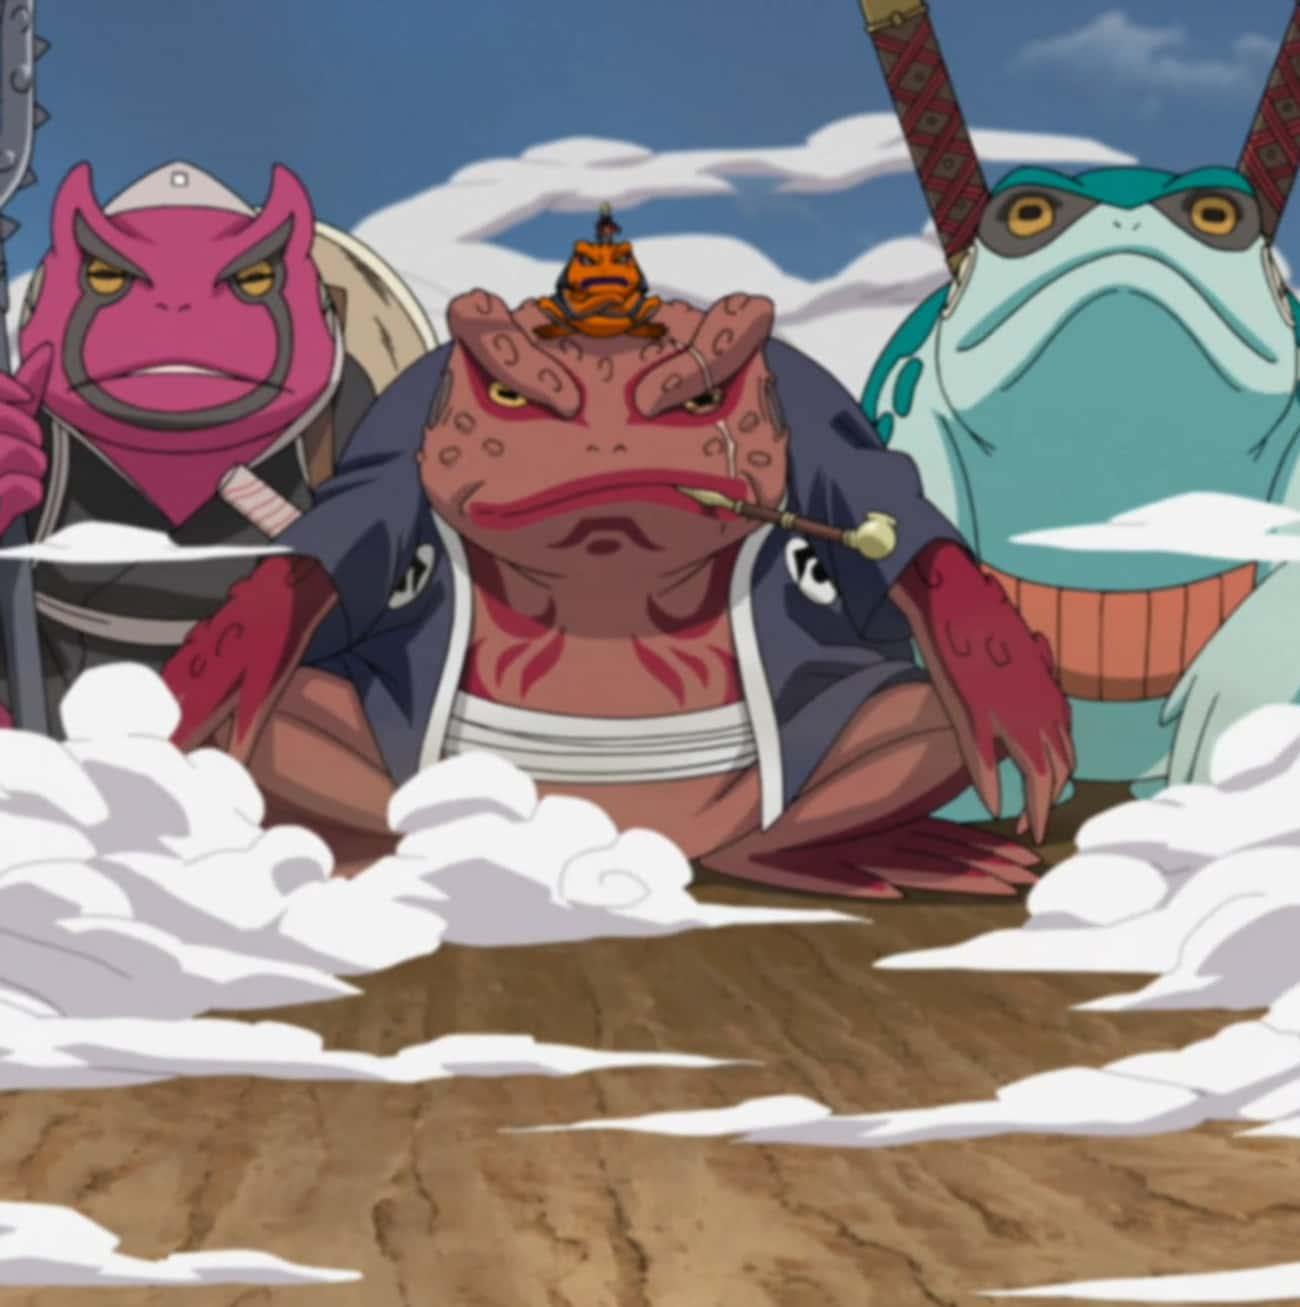 The Toads Are Named After Famo is listed (or ranked) 1 on the list 21 Things You Didn't Know About Naruto